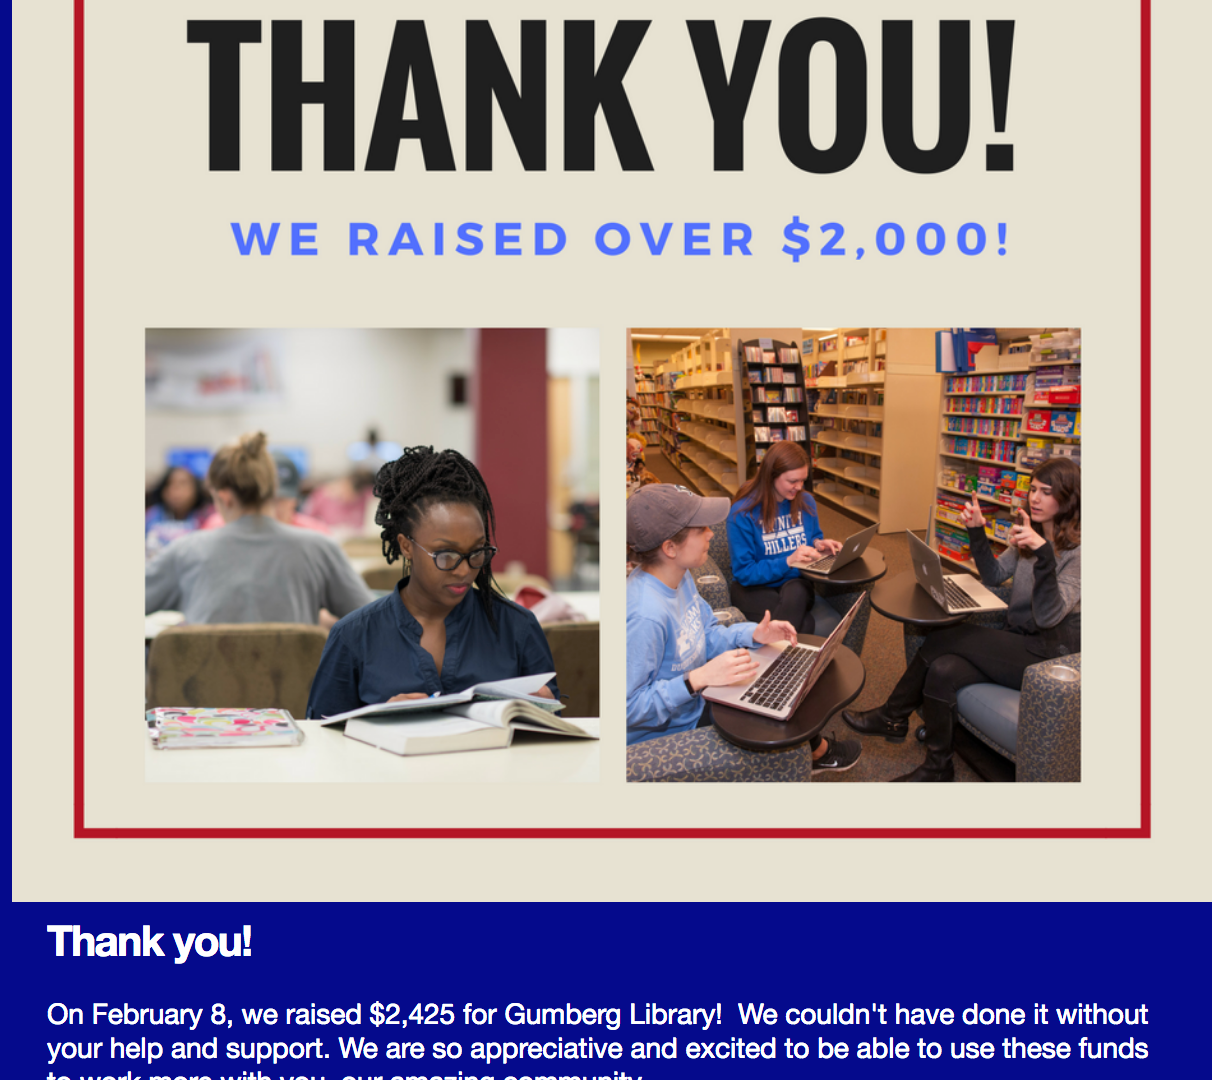 Day of Giving newsletter thank you